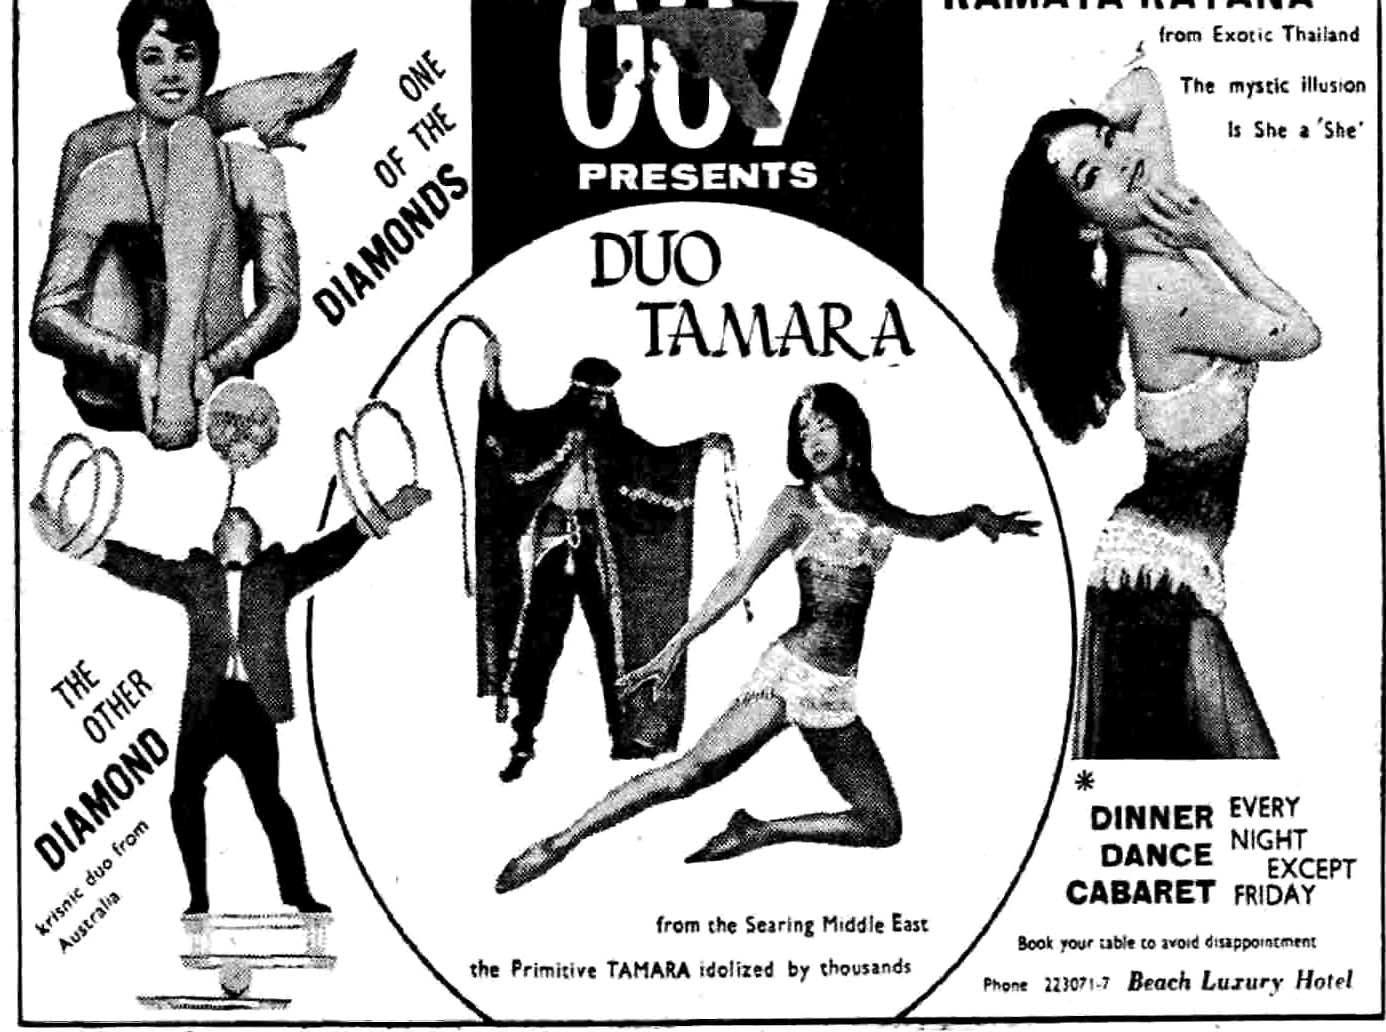 Advertisements for cabaret shows held at the Beach Luxury Hotel, Hotel Metropole and Palace Hotel were regularly published in Dawn in the fifties and sixties. Other hotels well-known for their cabaret shows included the InterContinental Hotel and The Excelsior.